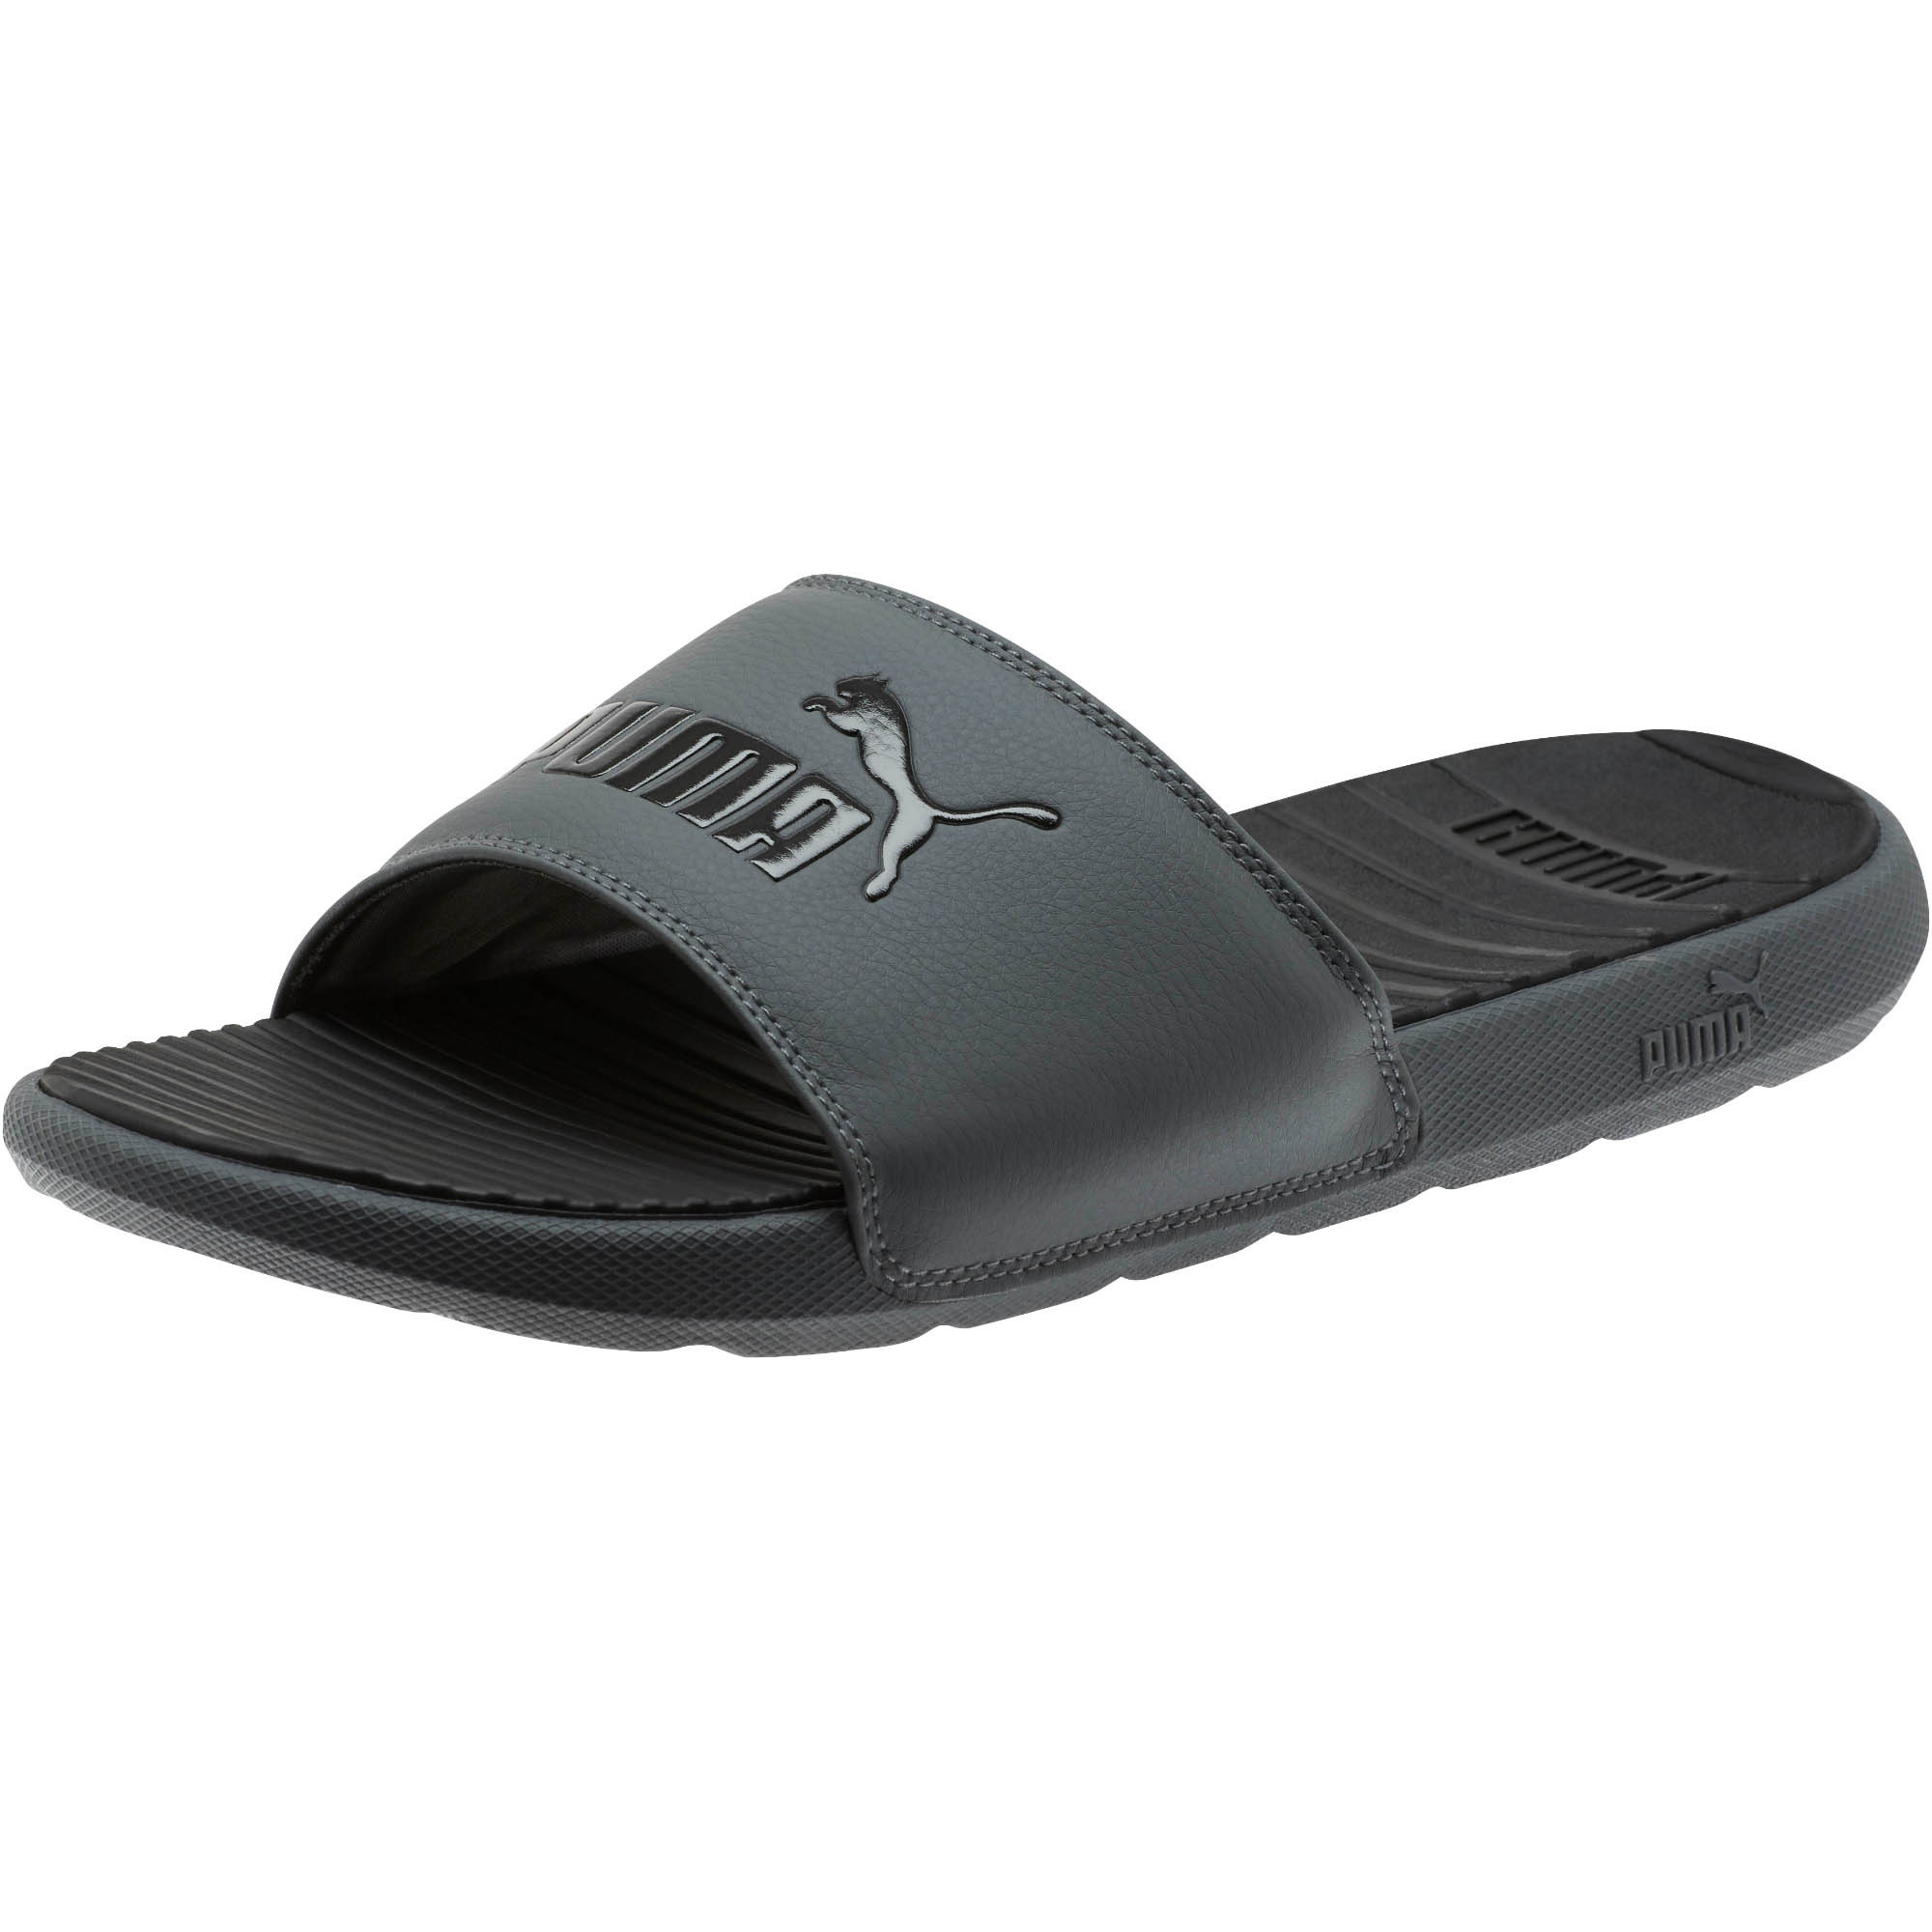 PUMA-Cool-Cat-Men-039-s-Slides-Men-Sandal-Swimming-Beach thumbnail 4